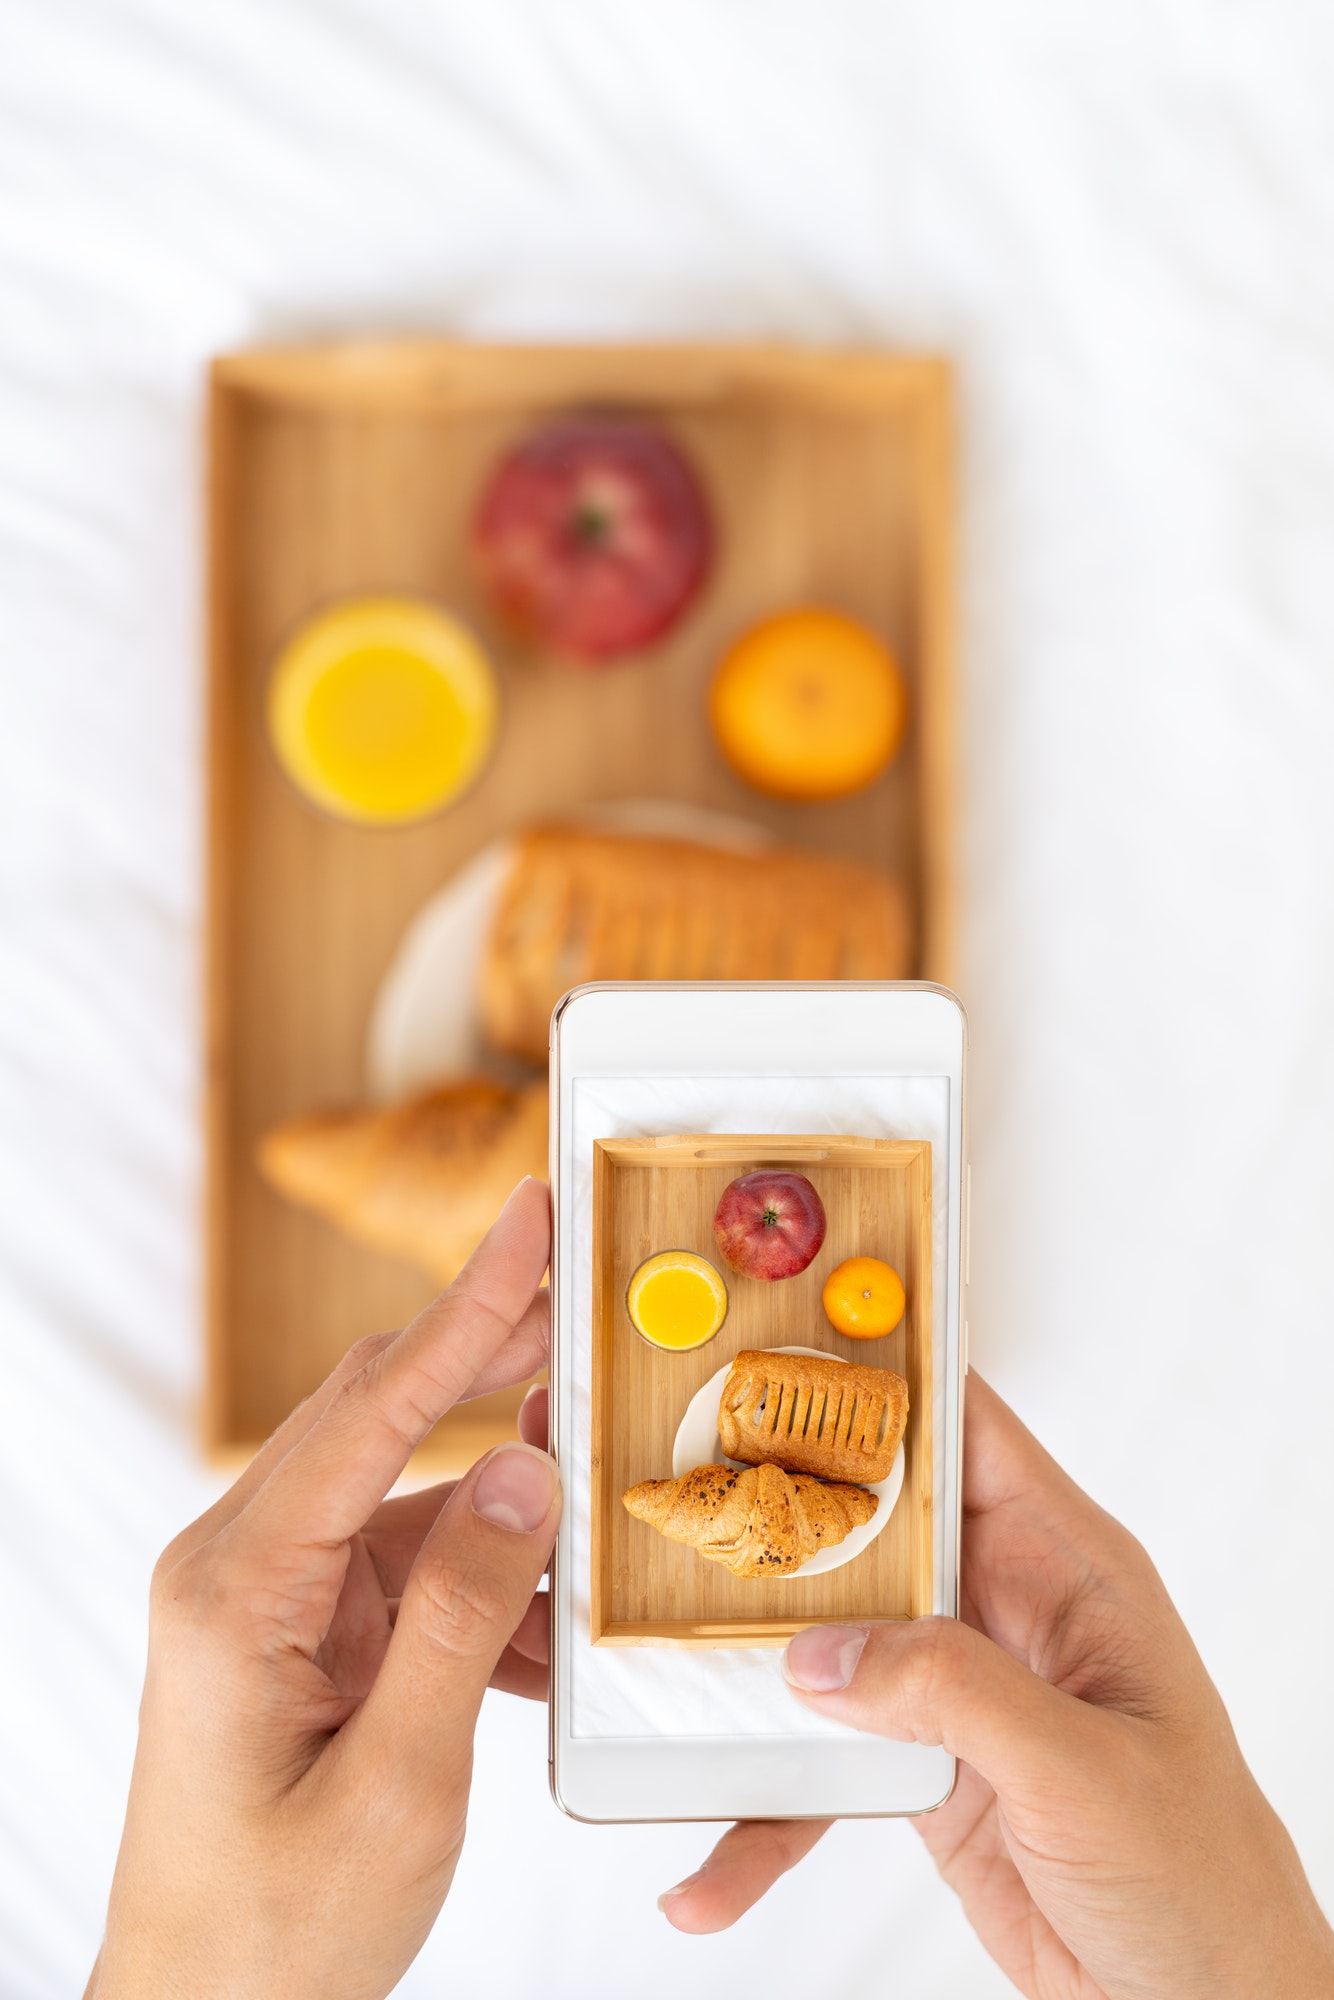 Blogger taking photos of food, shooting Breakfast in bed at hotel on mobile phone, tray with juice